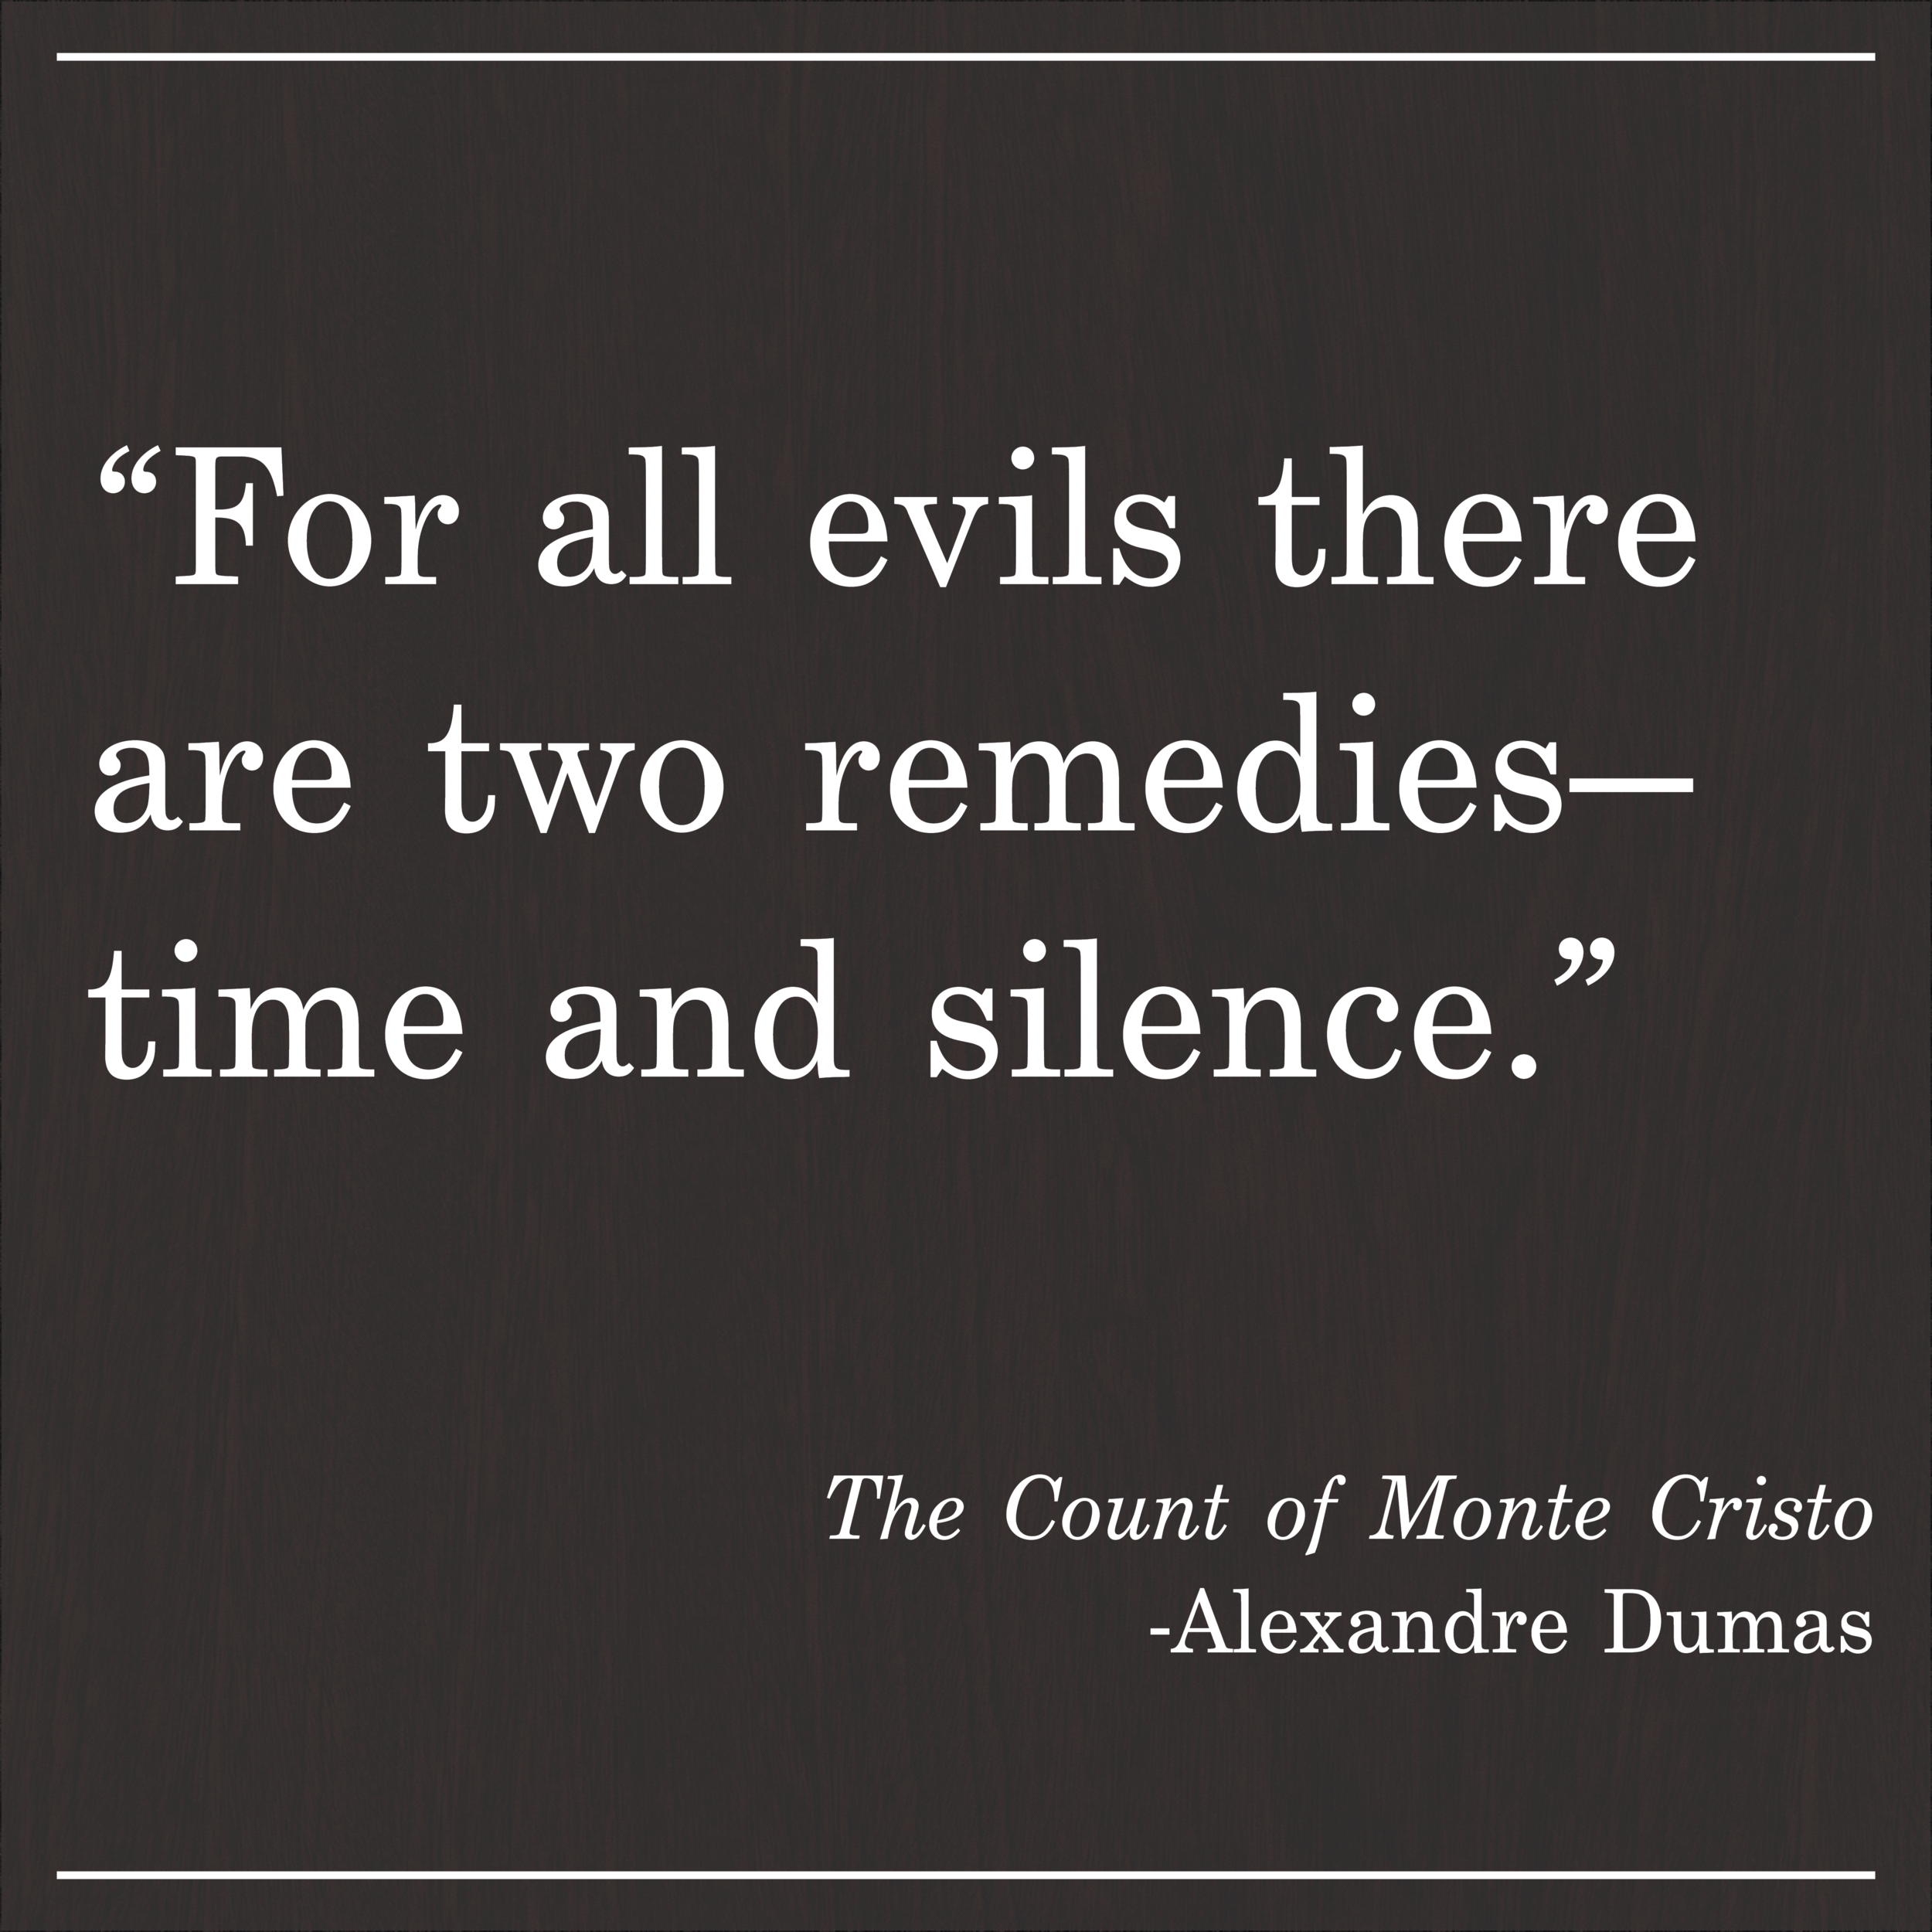 Daily Quote The Count of Monte Cristo Alexander Dumas